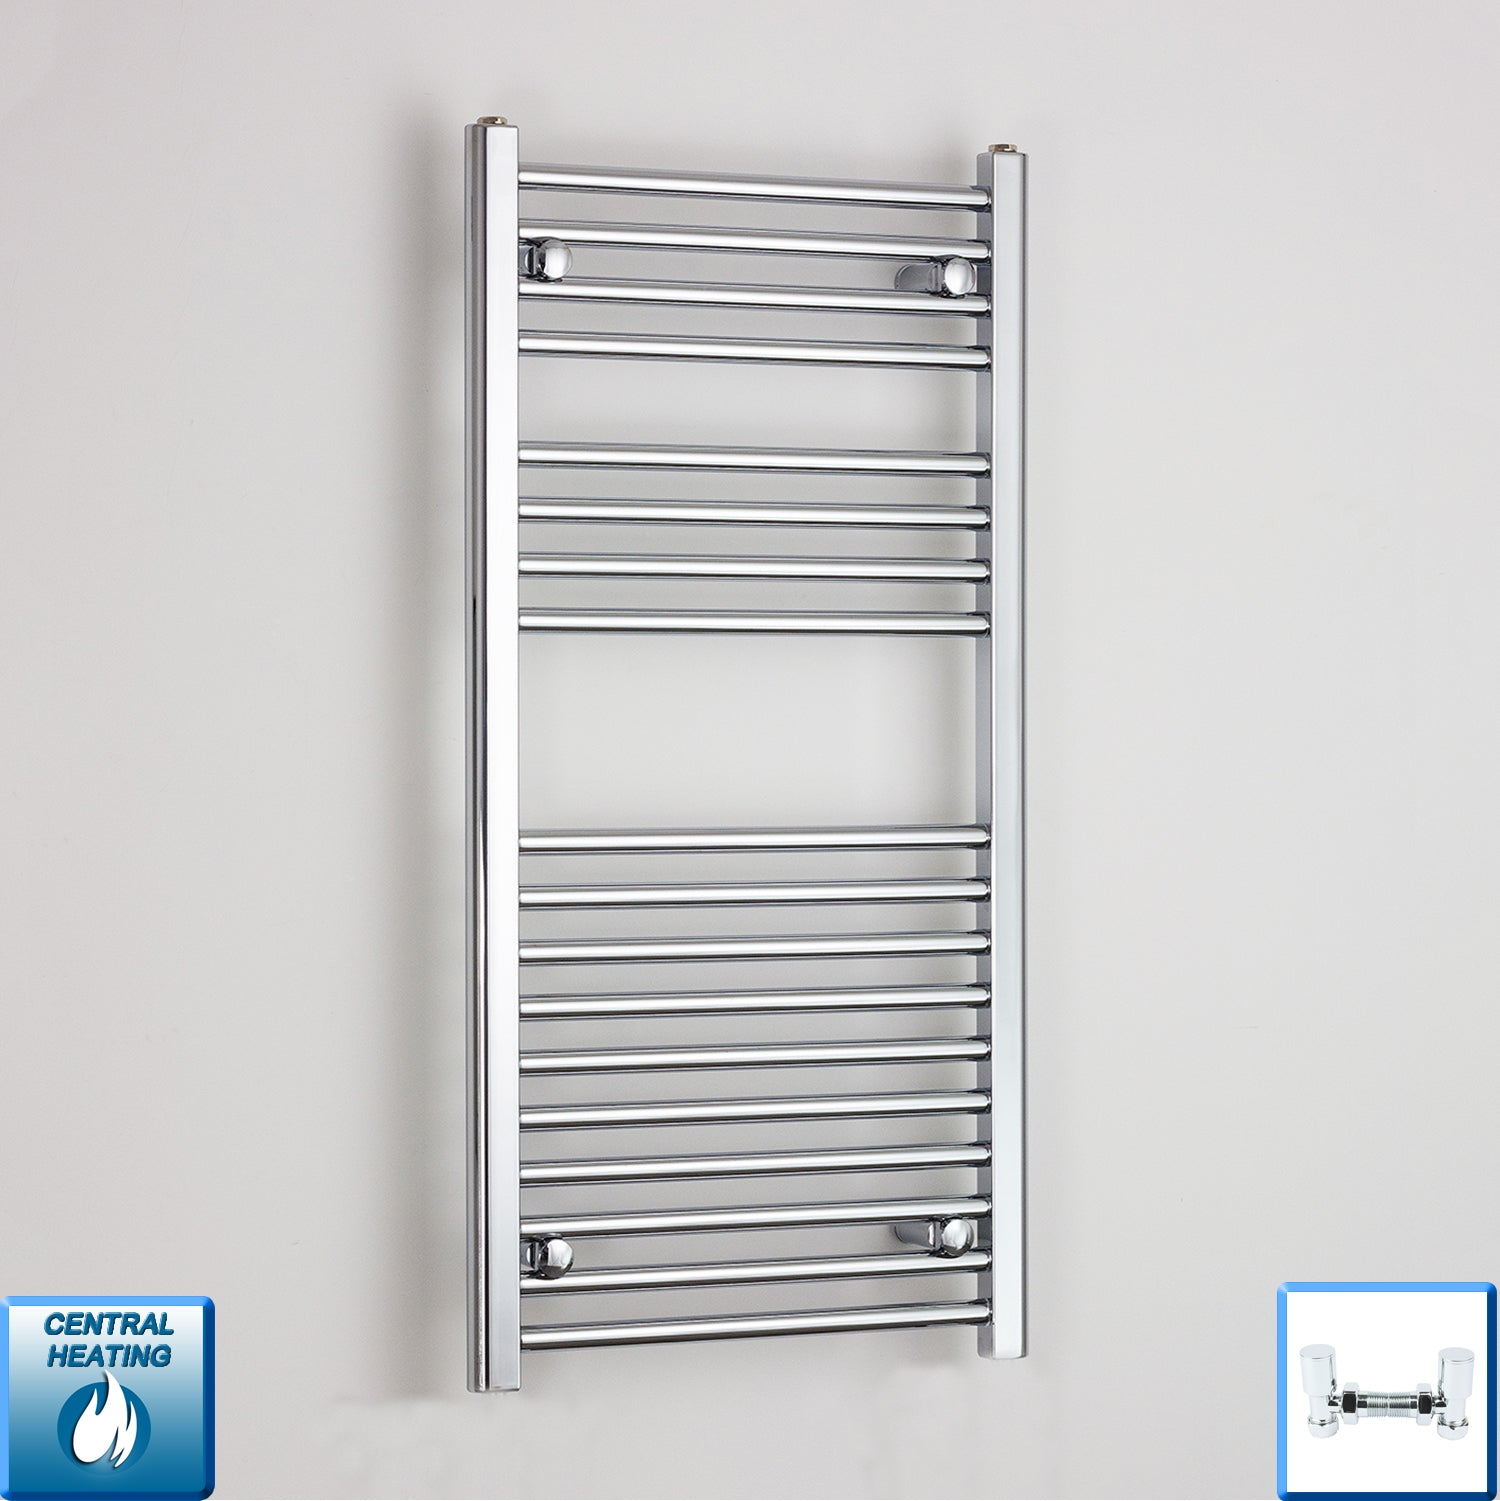 600mm Wide 1000mm High Chrome Towel Rail Radiator With Angled Valve